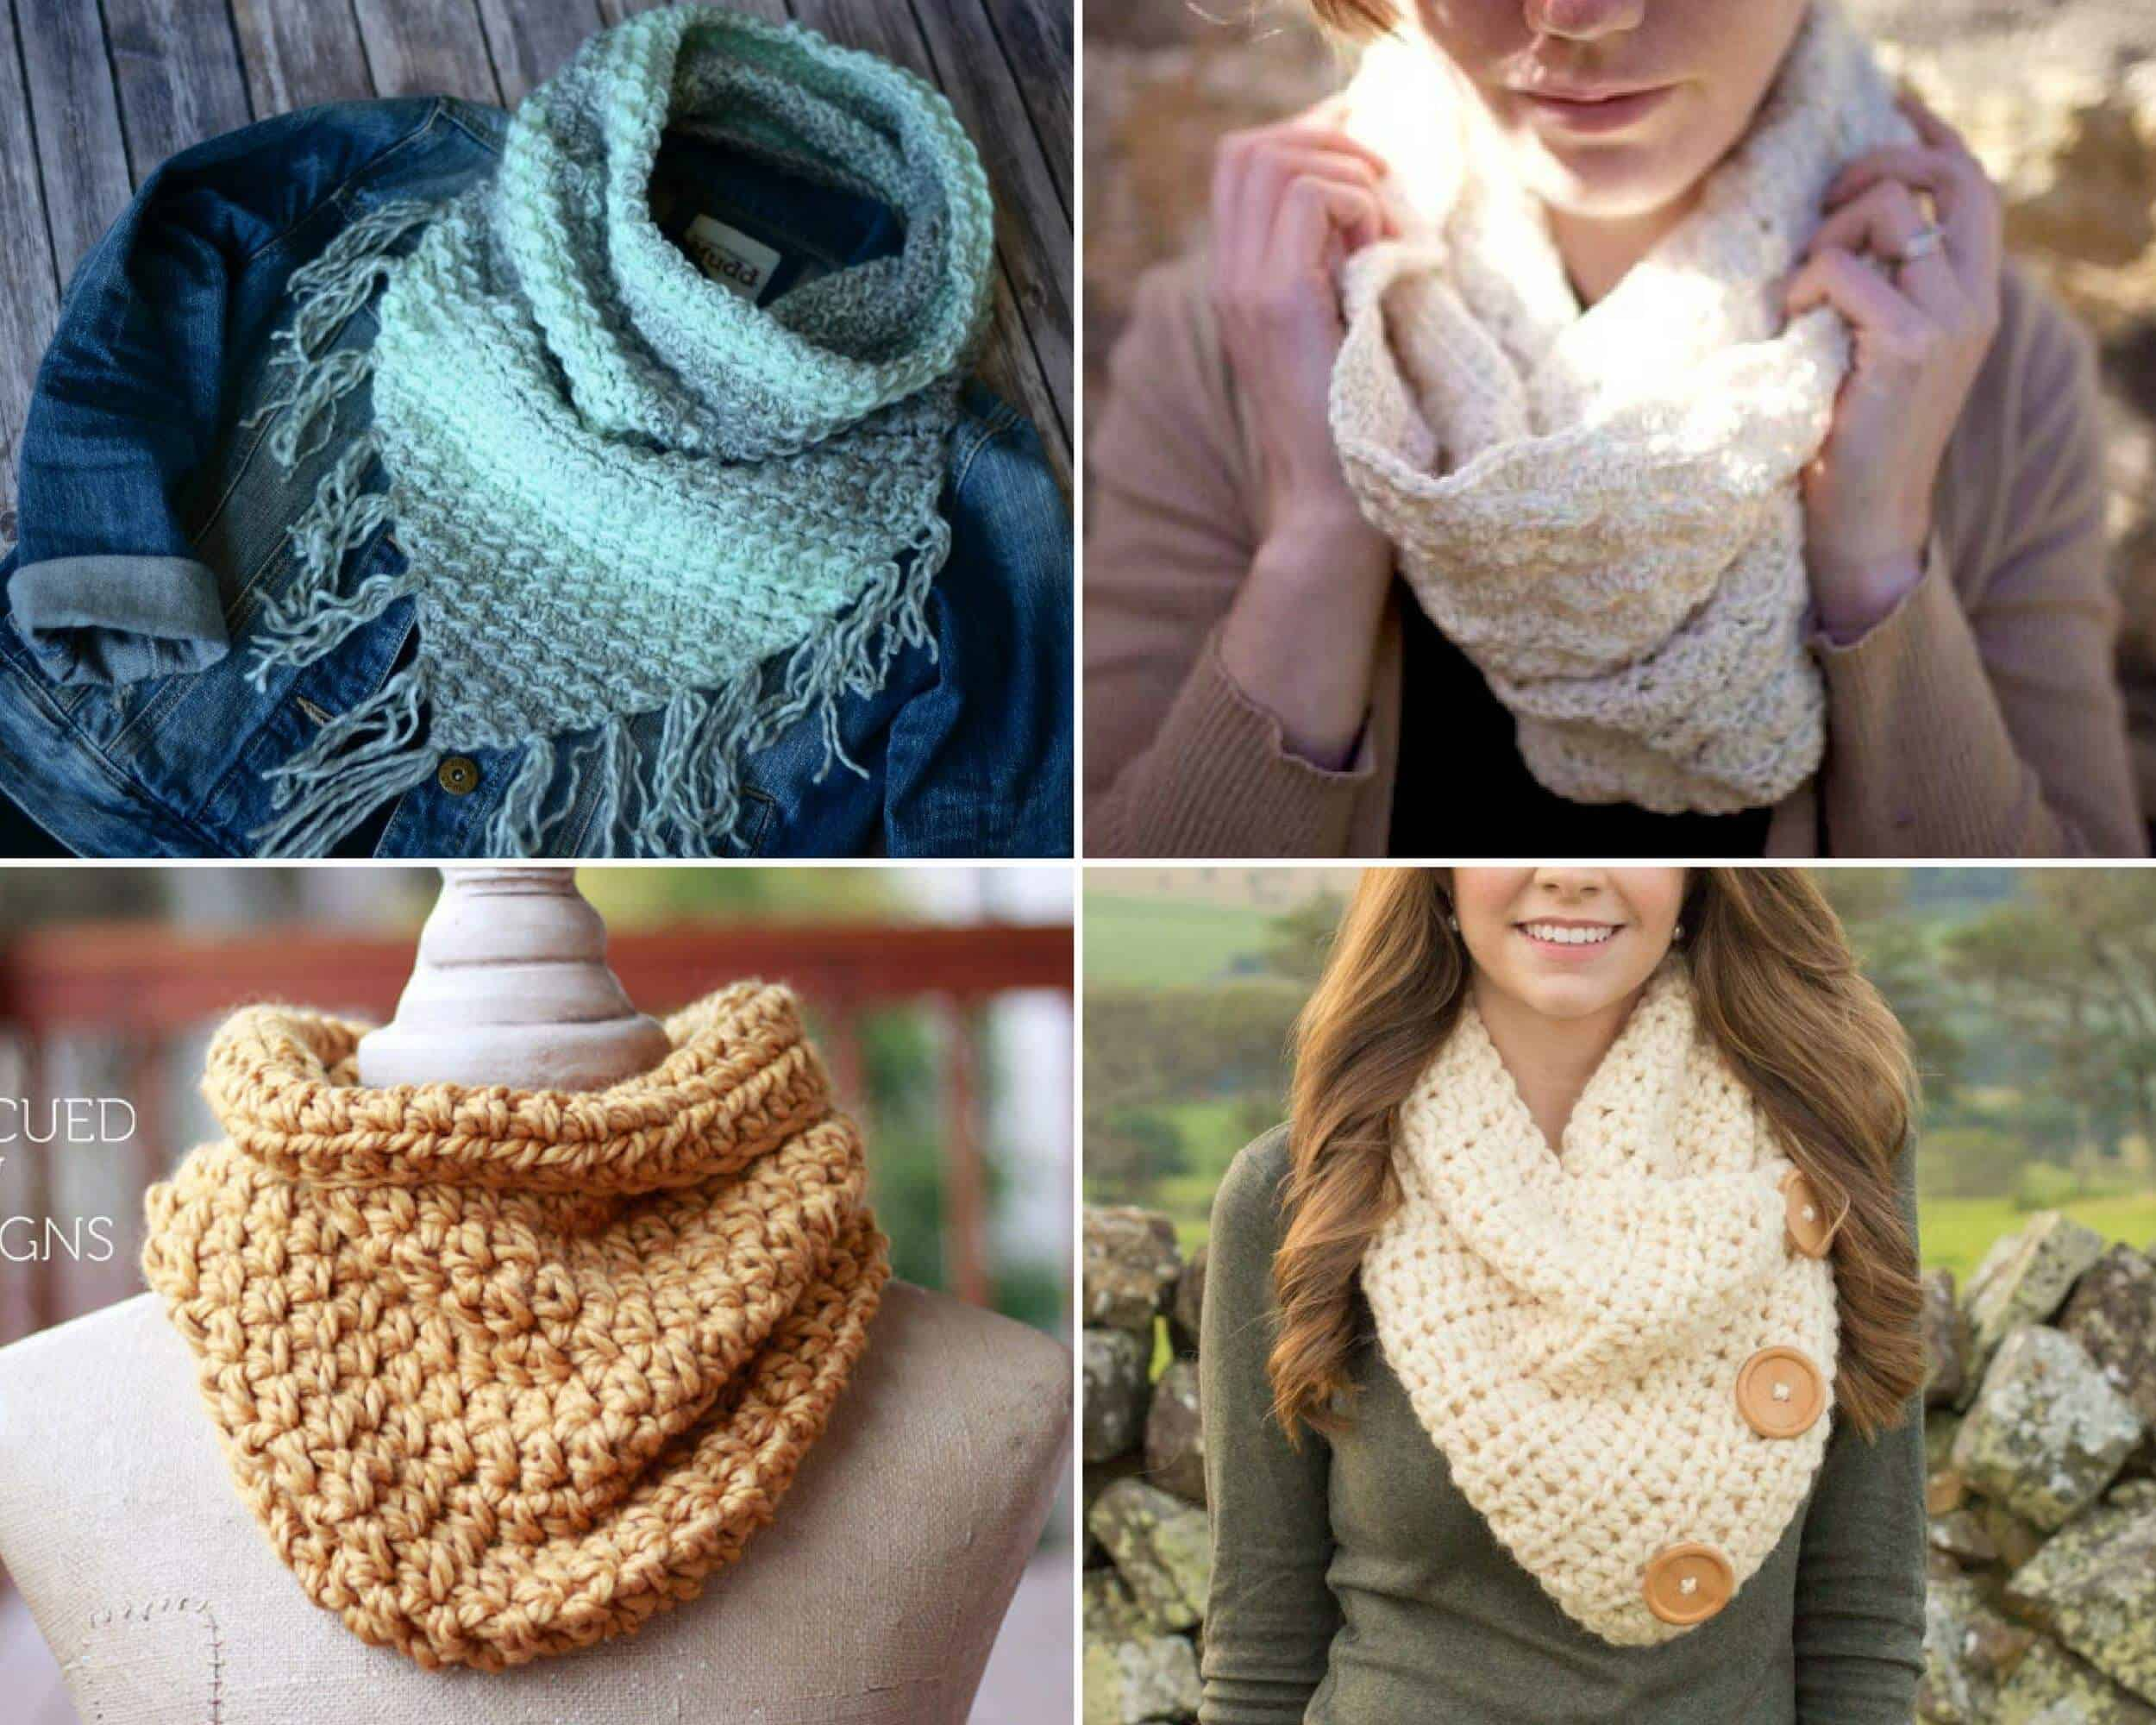 Free cowl crochet patterns 15 beautiful projects daisy cottage 15 free cowl crochet patterns these make wonderful gifts and fashion statements bankloansurffo Gallery